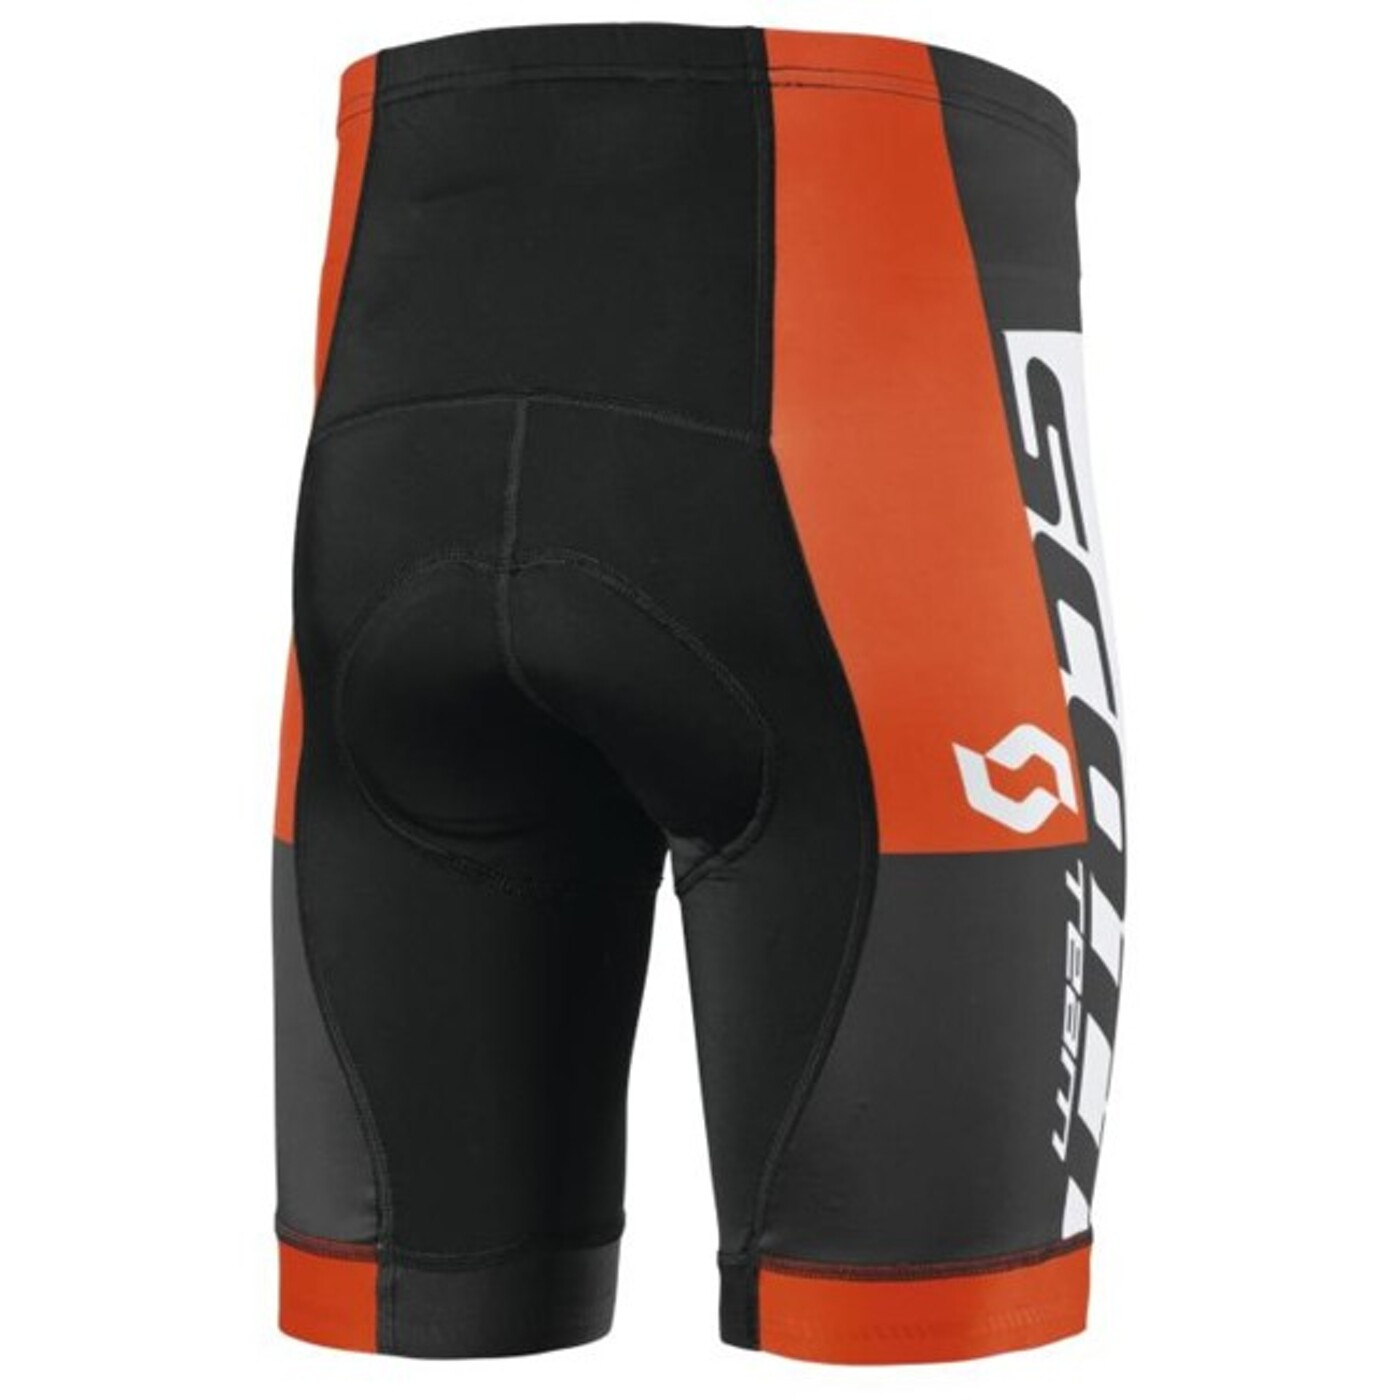 SCOTT BIK6S Short RC Team - Herren